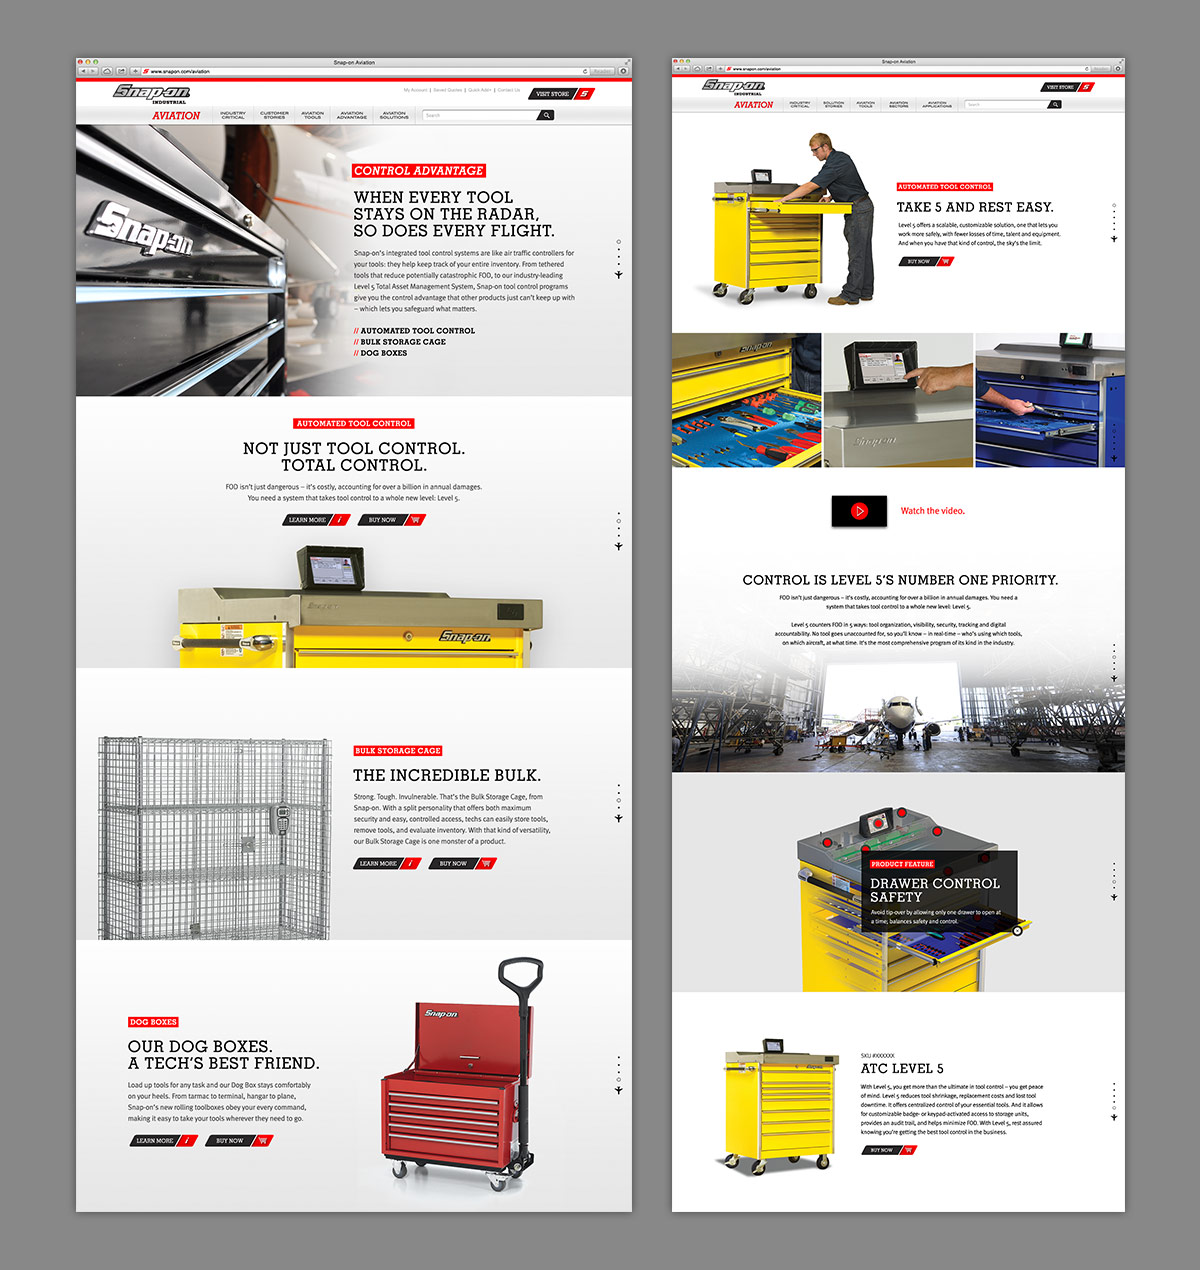 Snap-on-Pages-6.jpg